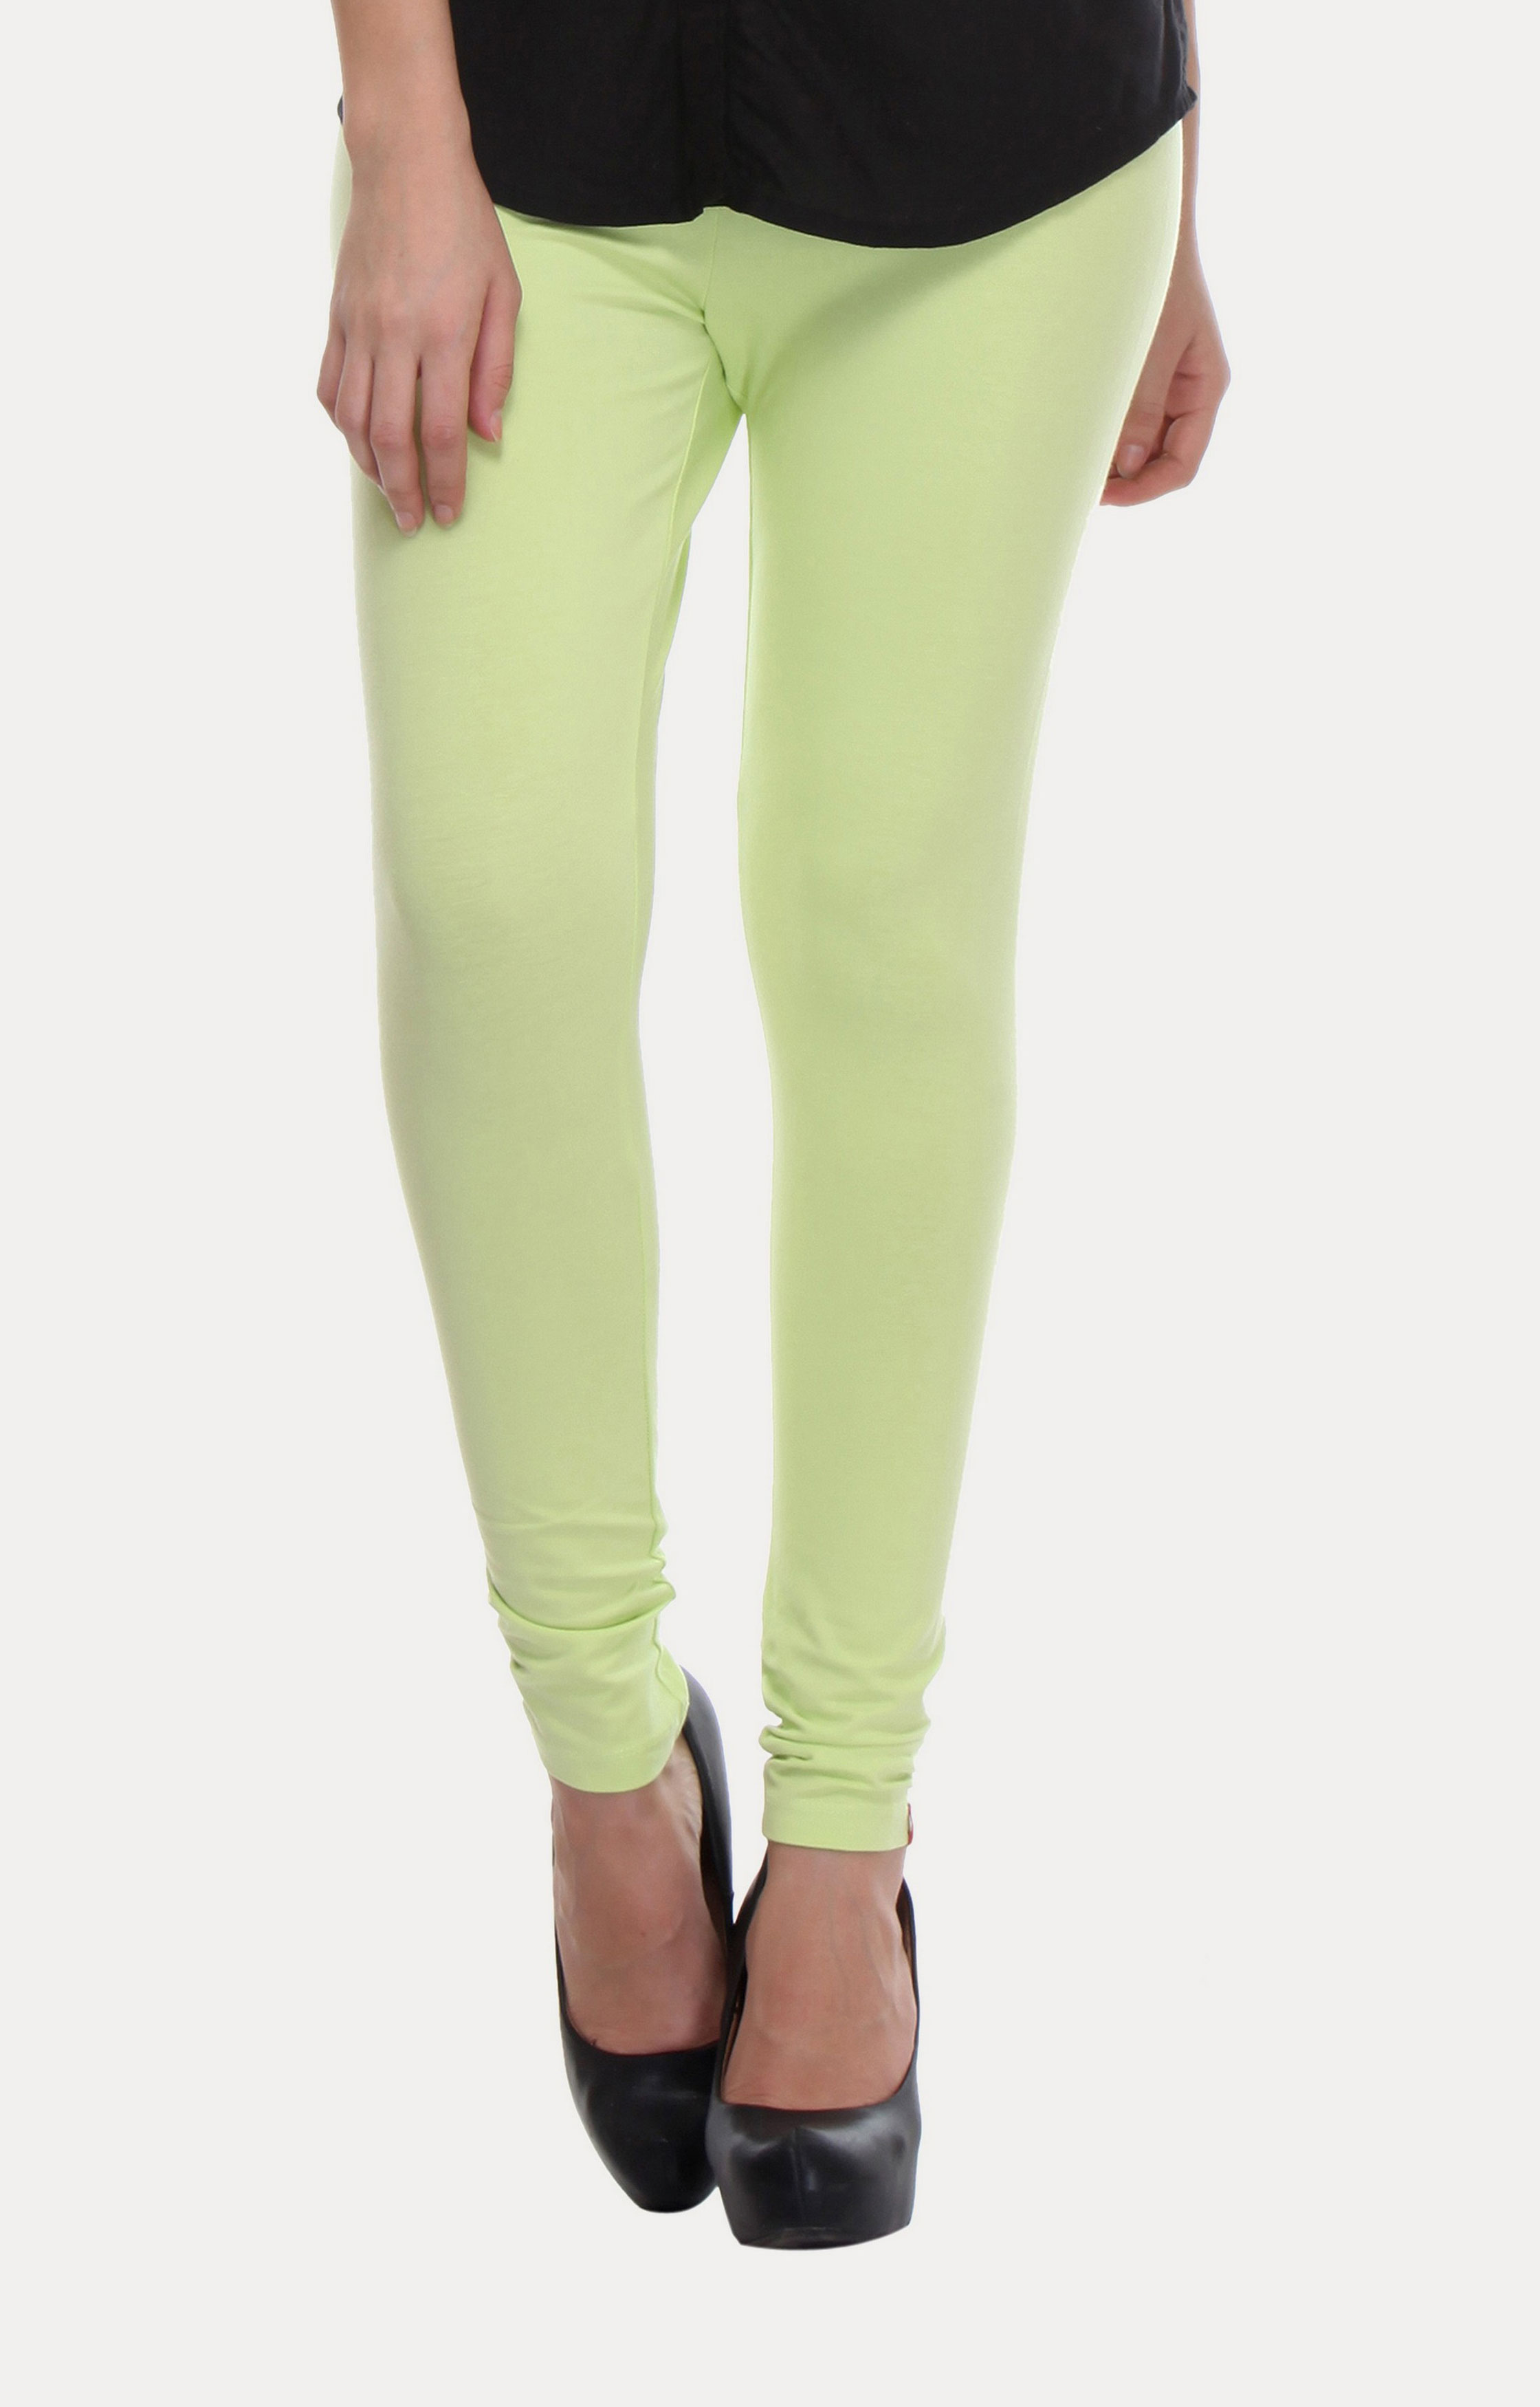 W | W Women Green Color Tights